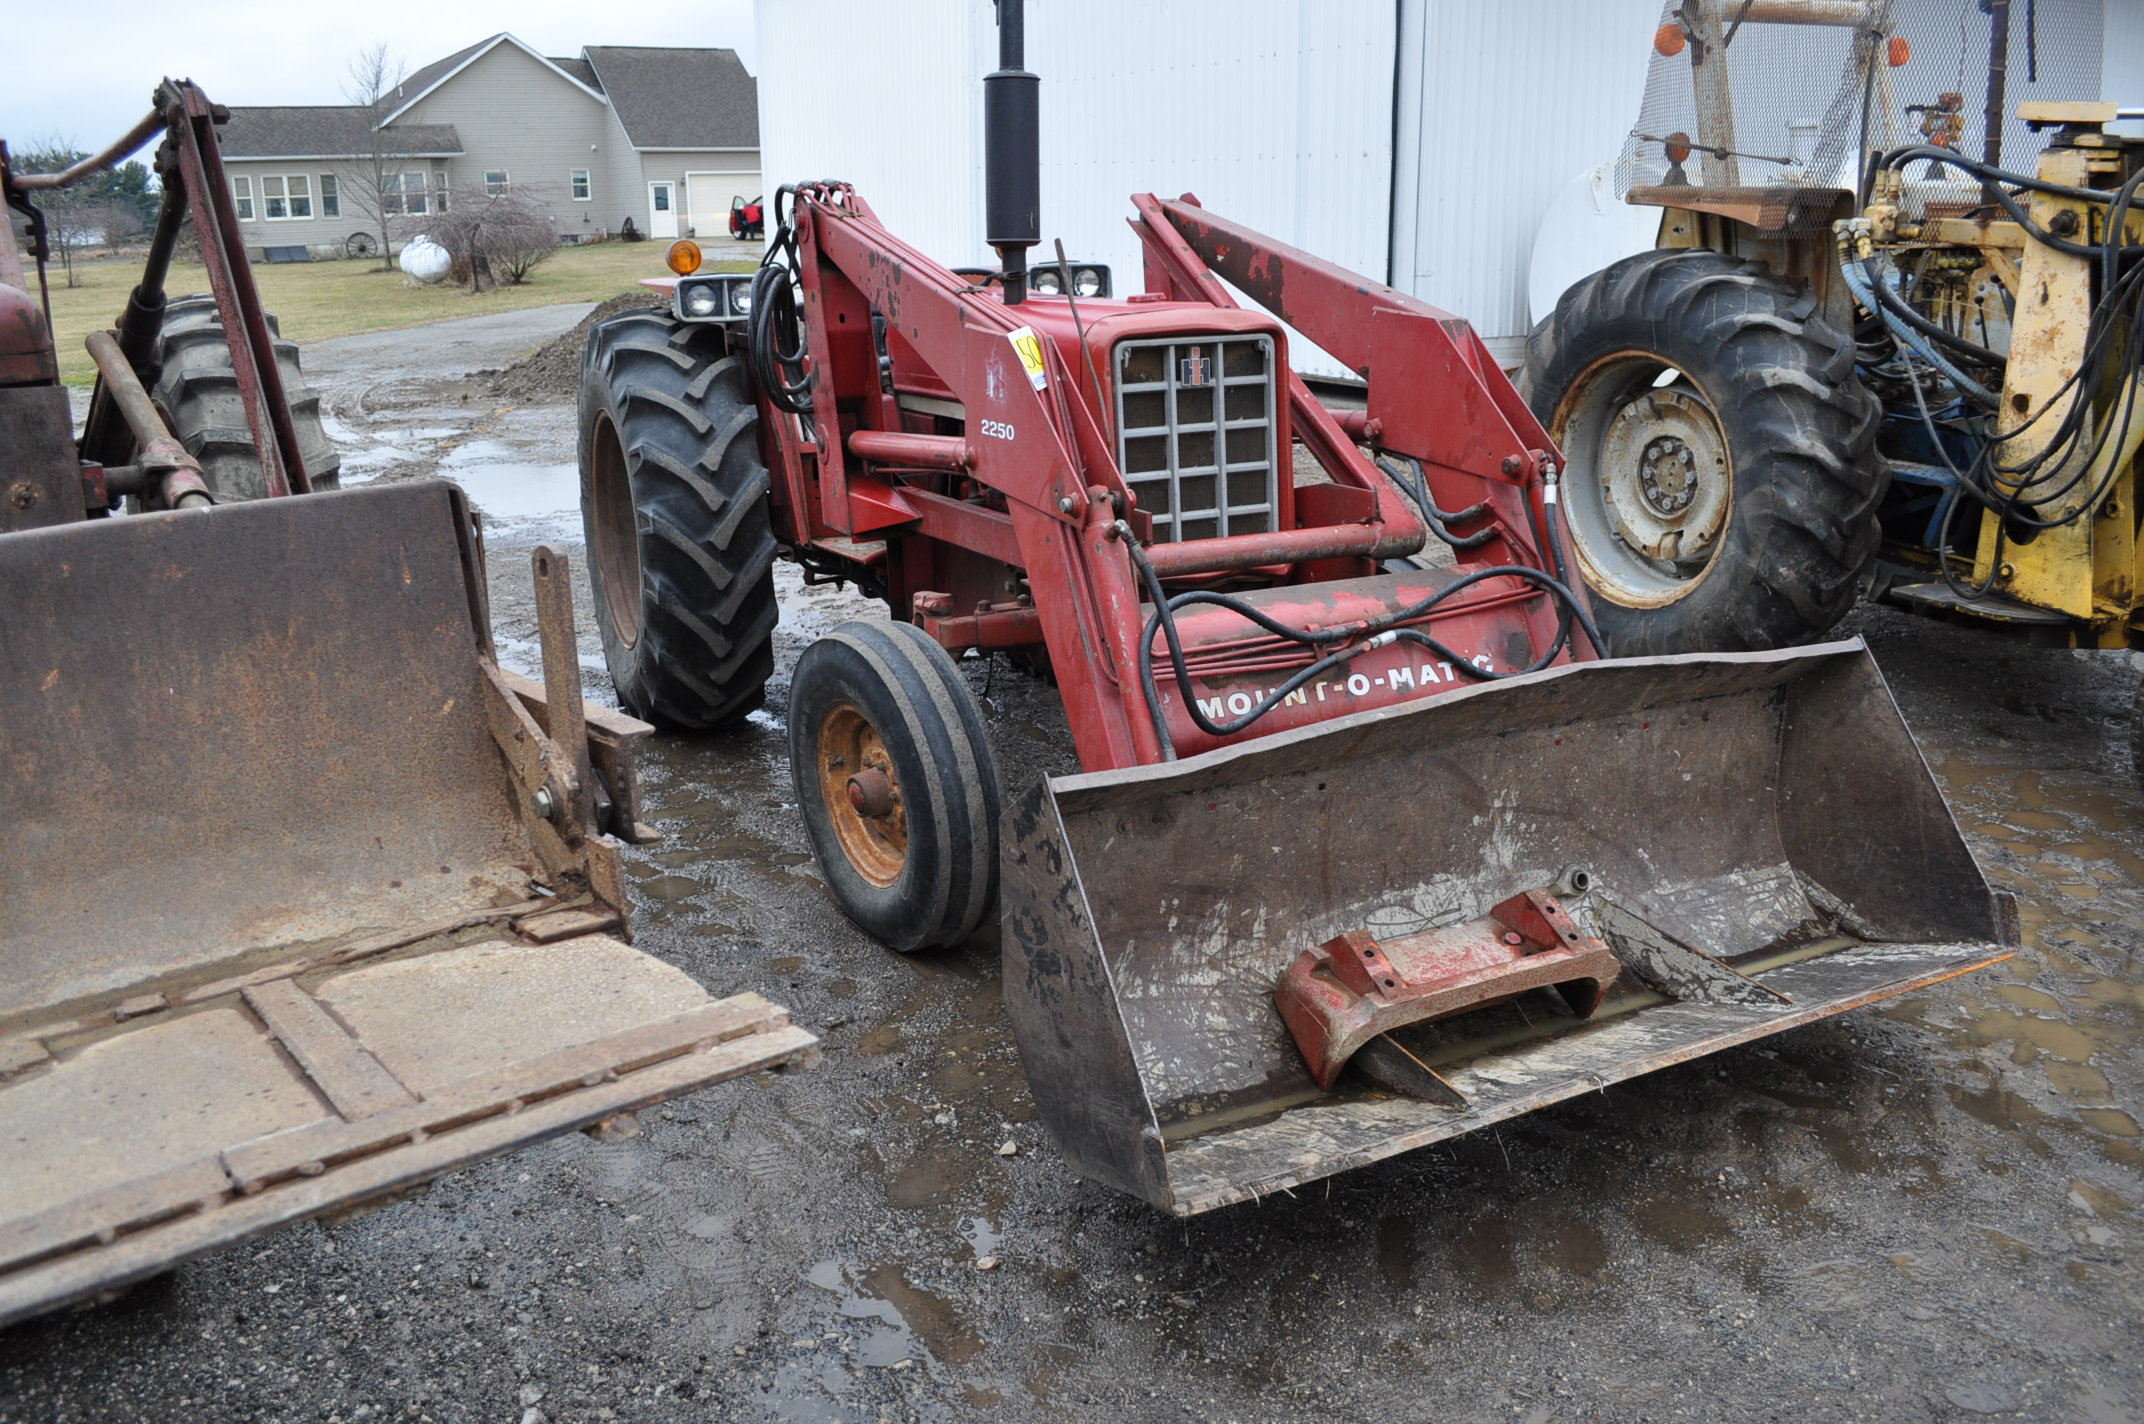 International 674 tractor, 16.9-30 rear, 7.50-16 front, diesel, single hyd, 3pt, 540 PTO, sells with - Image 2 of 16